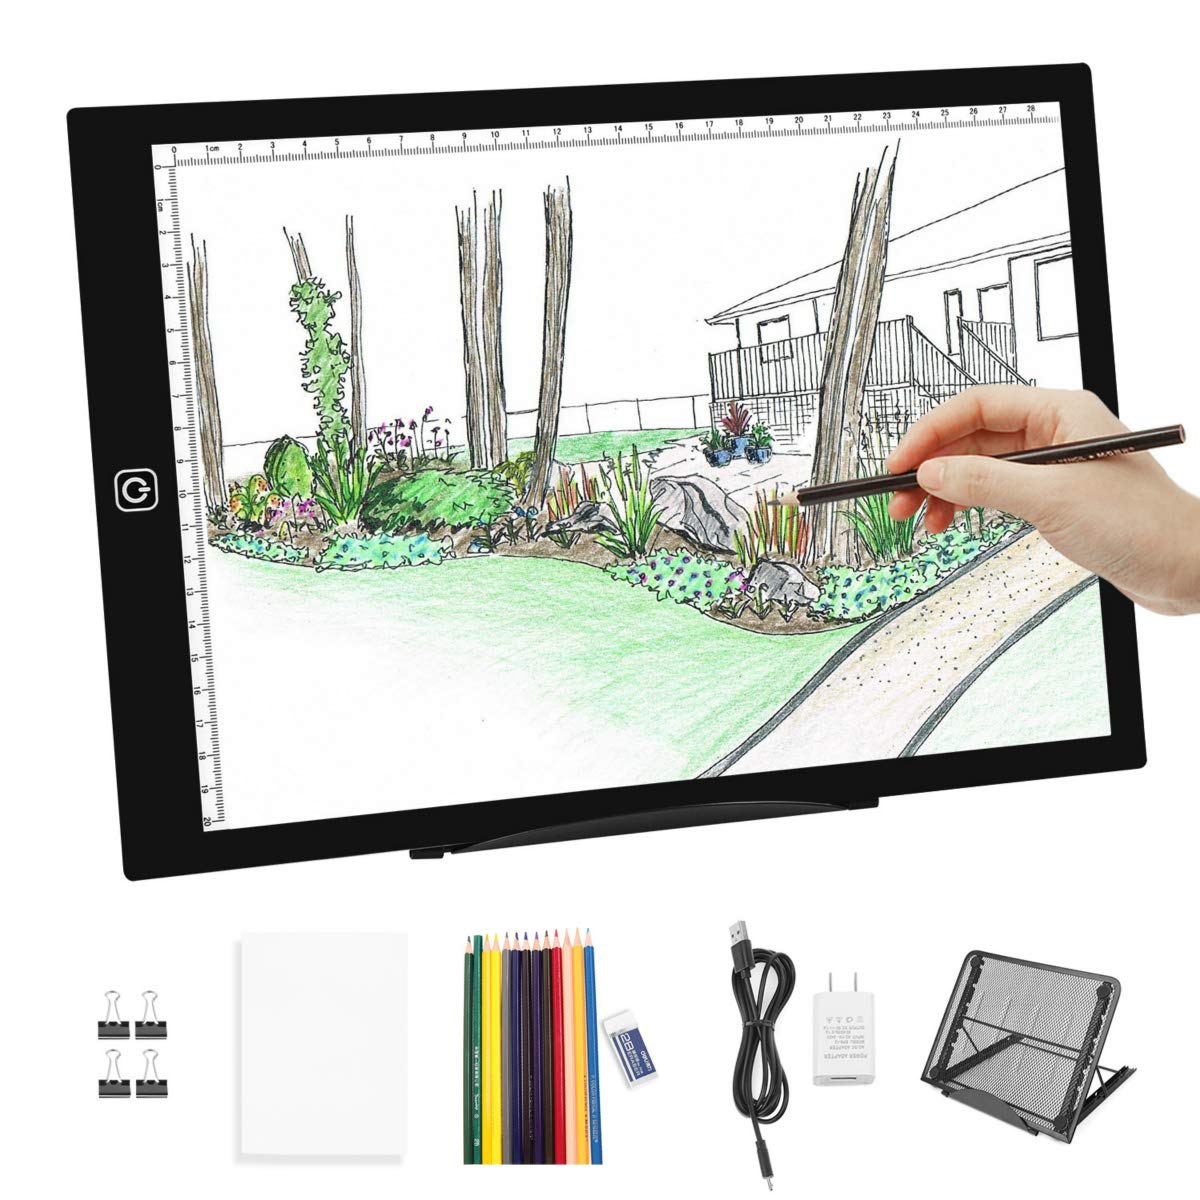 A4 LED Light Box Tracer-Dimmable Artcraft Tracing Light Pad Light Board Multi-Angle Stand 12 Colors Pencils & USB Charger for Artists Kids Beginners, Drawing Hand Lettering Sketching Animation by GZMWON